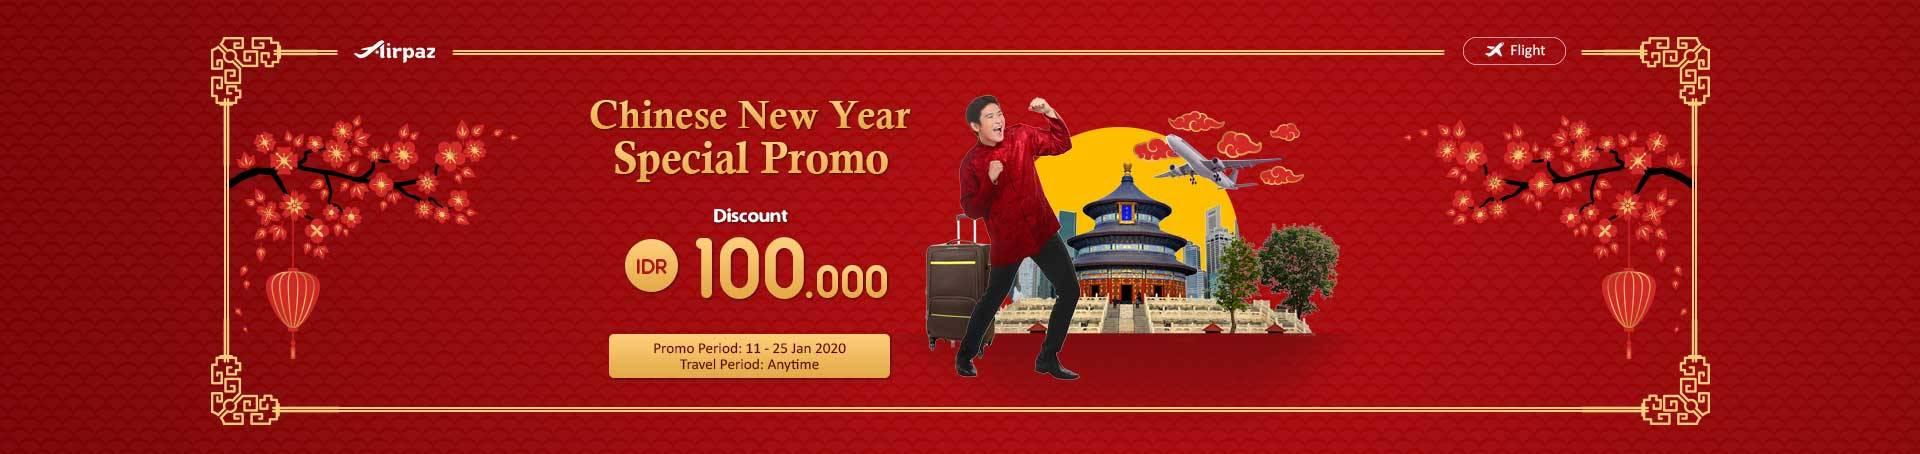 Diskon Airpaz Promo Chinese New Year Special Deals For You, Enjoy Rp 100,000 Discount